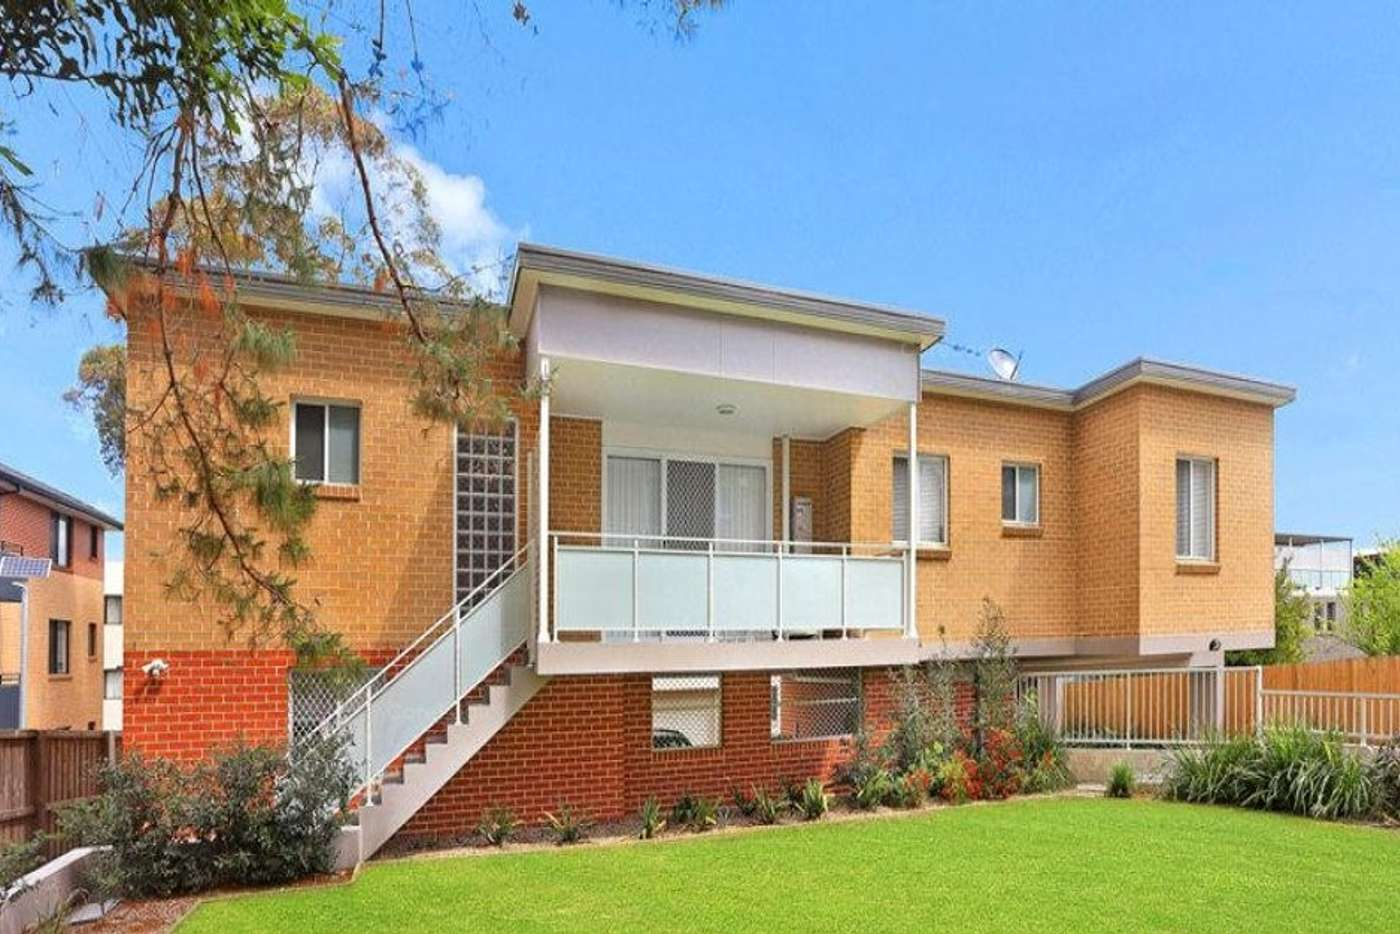 Main view of Homely apartment listing, 9/11 O'REILLY STREET, Parramatta NSW 2150